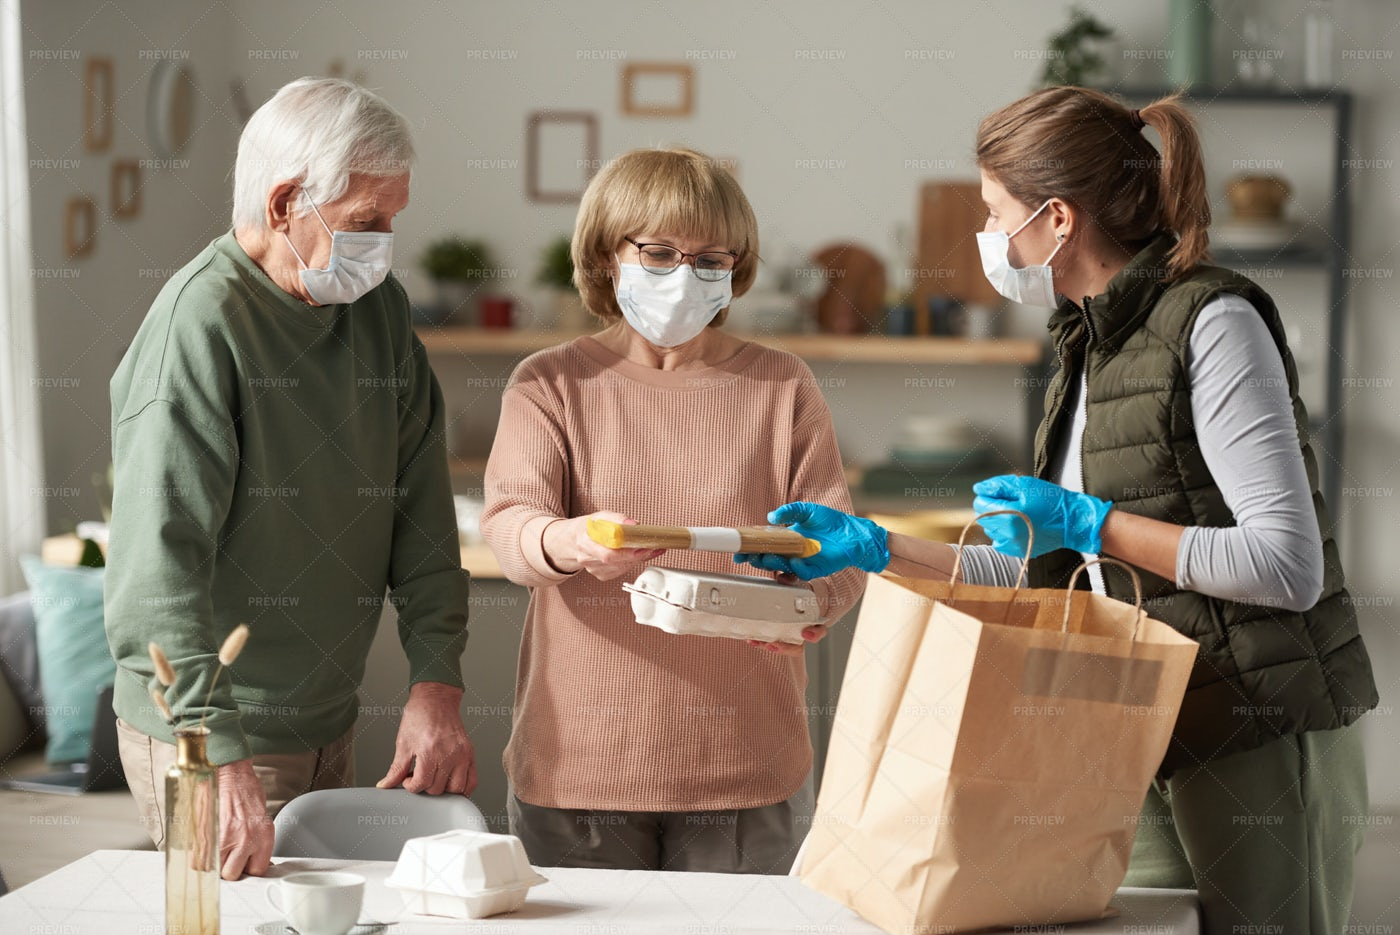 Delivering Food During Pandemic: Stock Photos